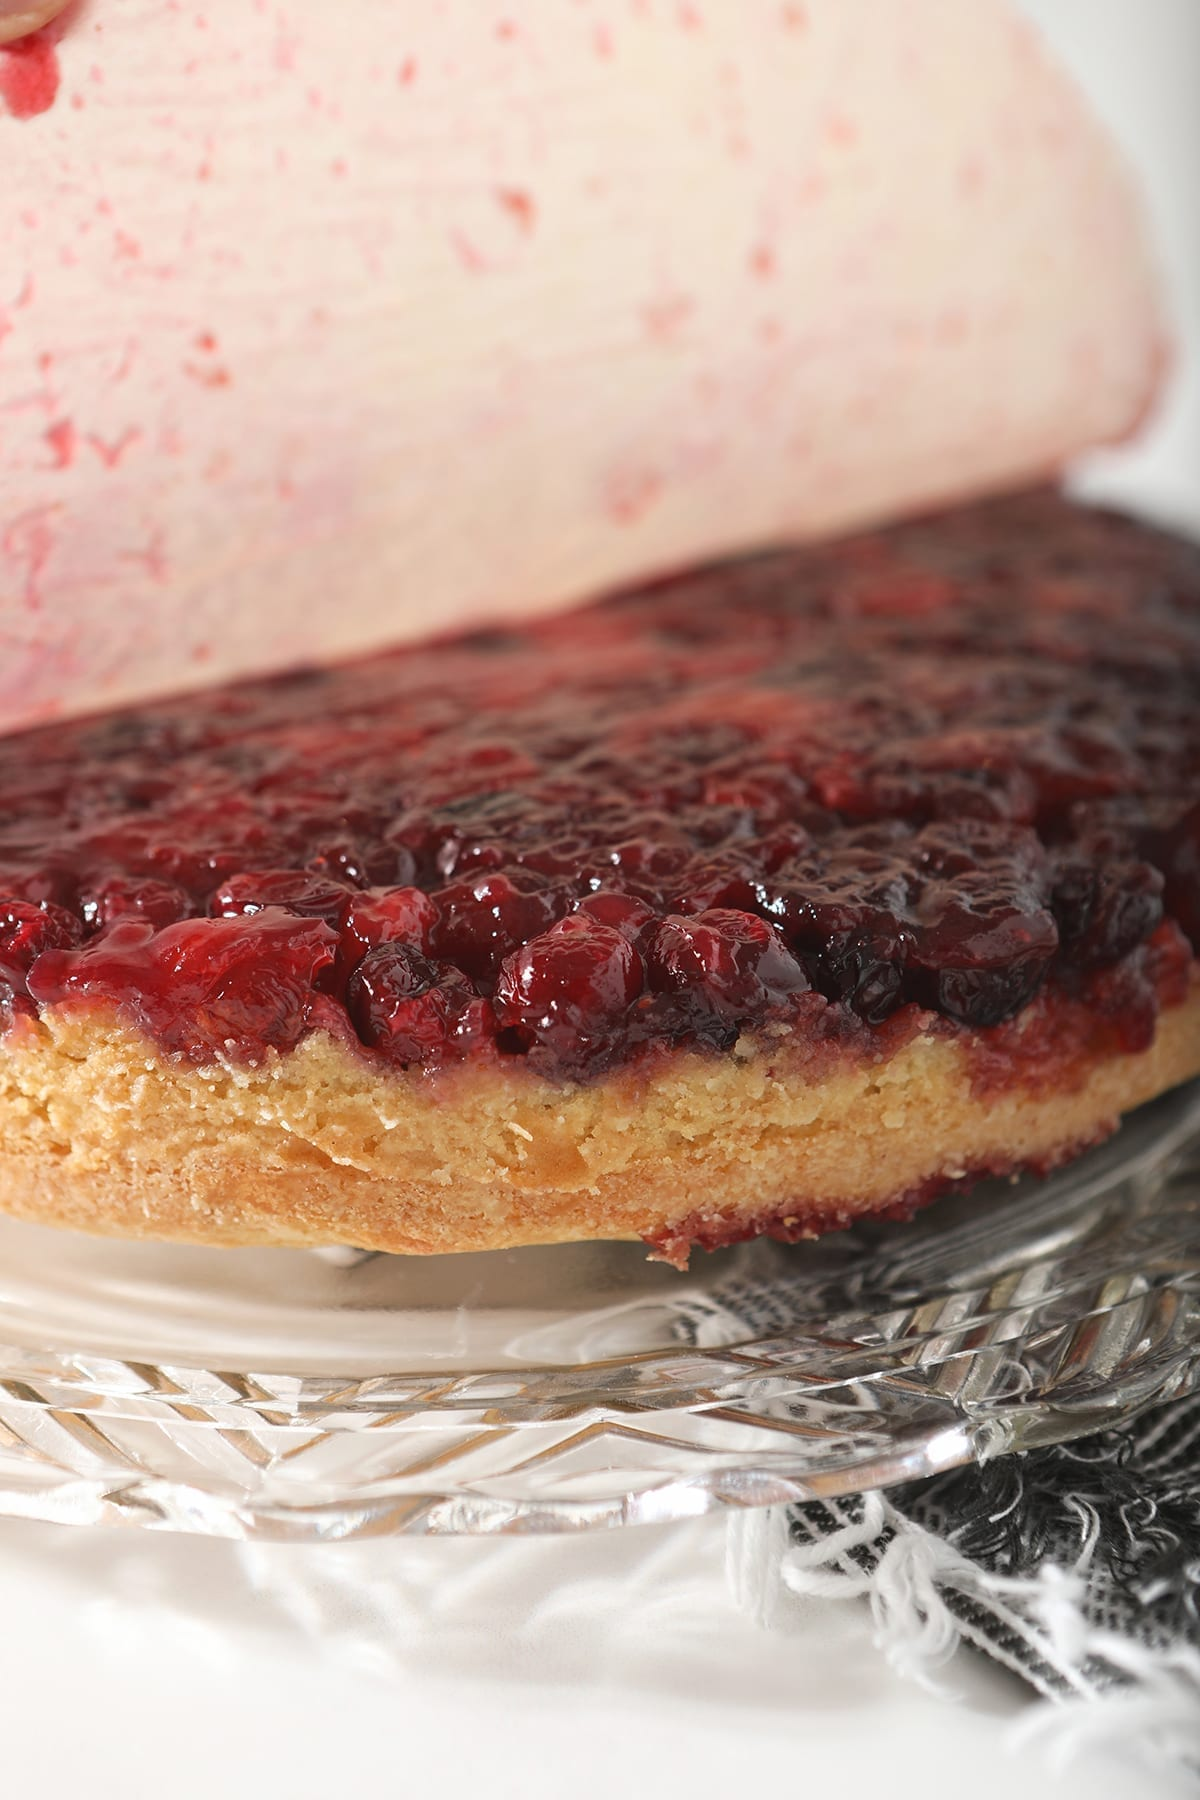 Parchment paper is peeled off of the cranberry sauce layer of the cake